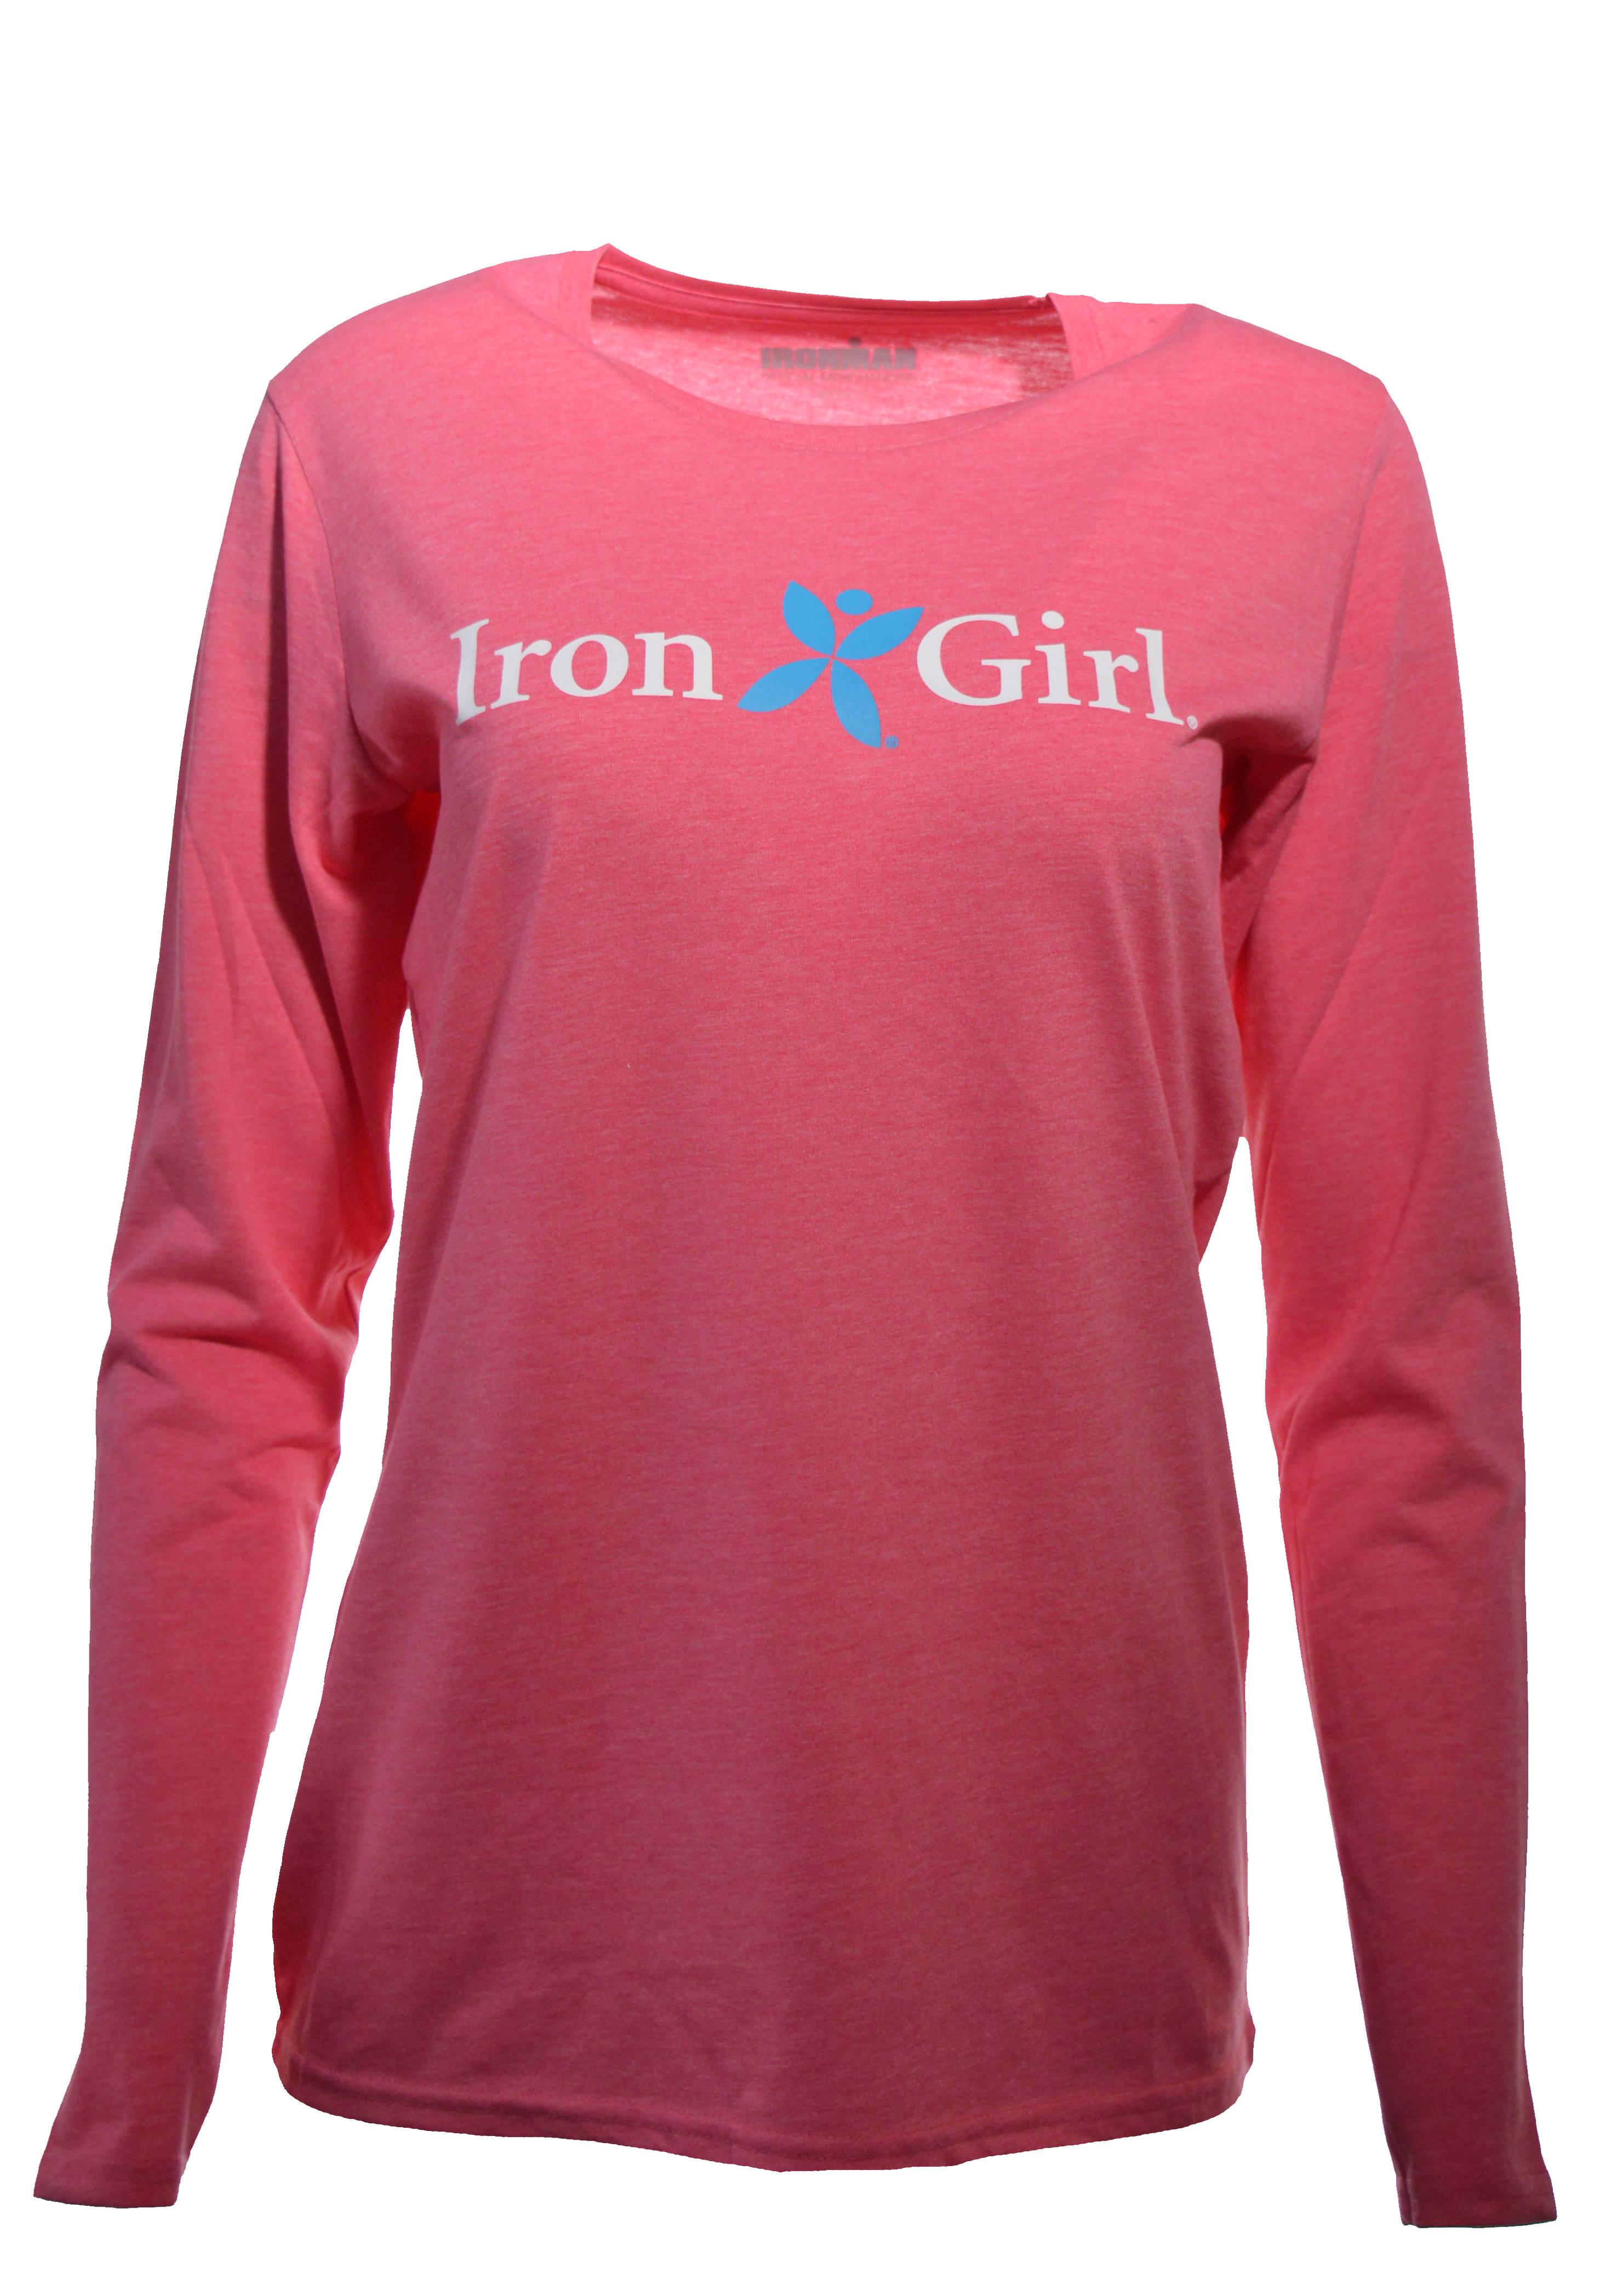 Iron Girl Women's Long Sleeve Tee - Pink Melange